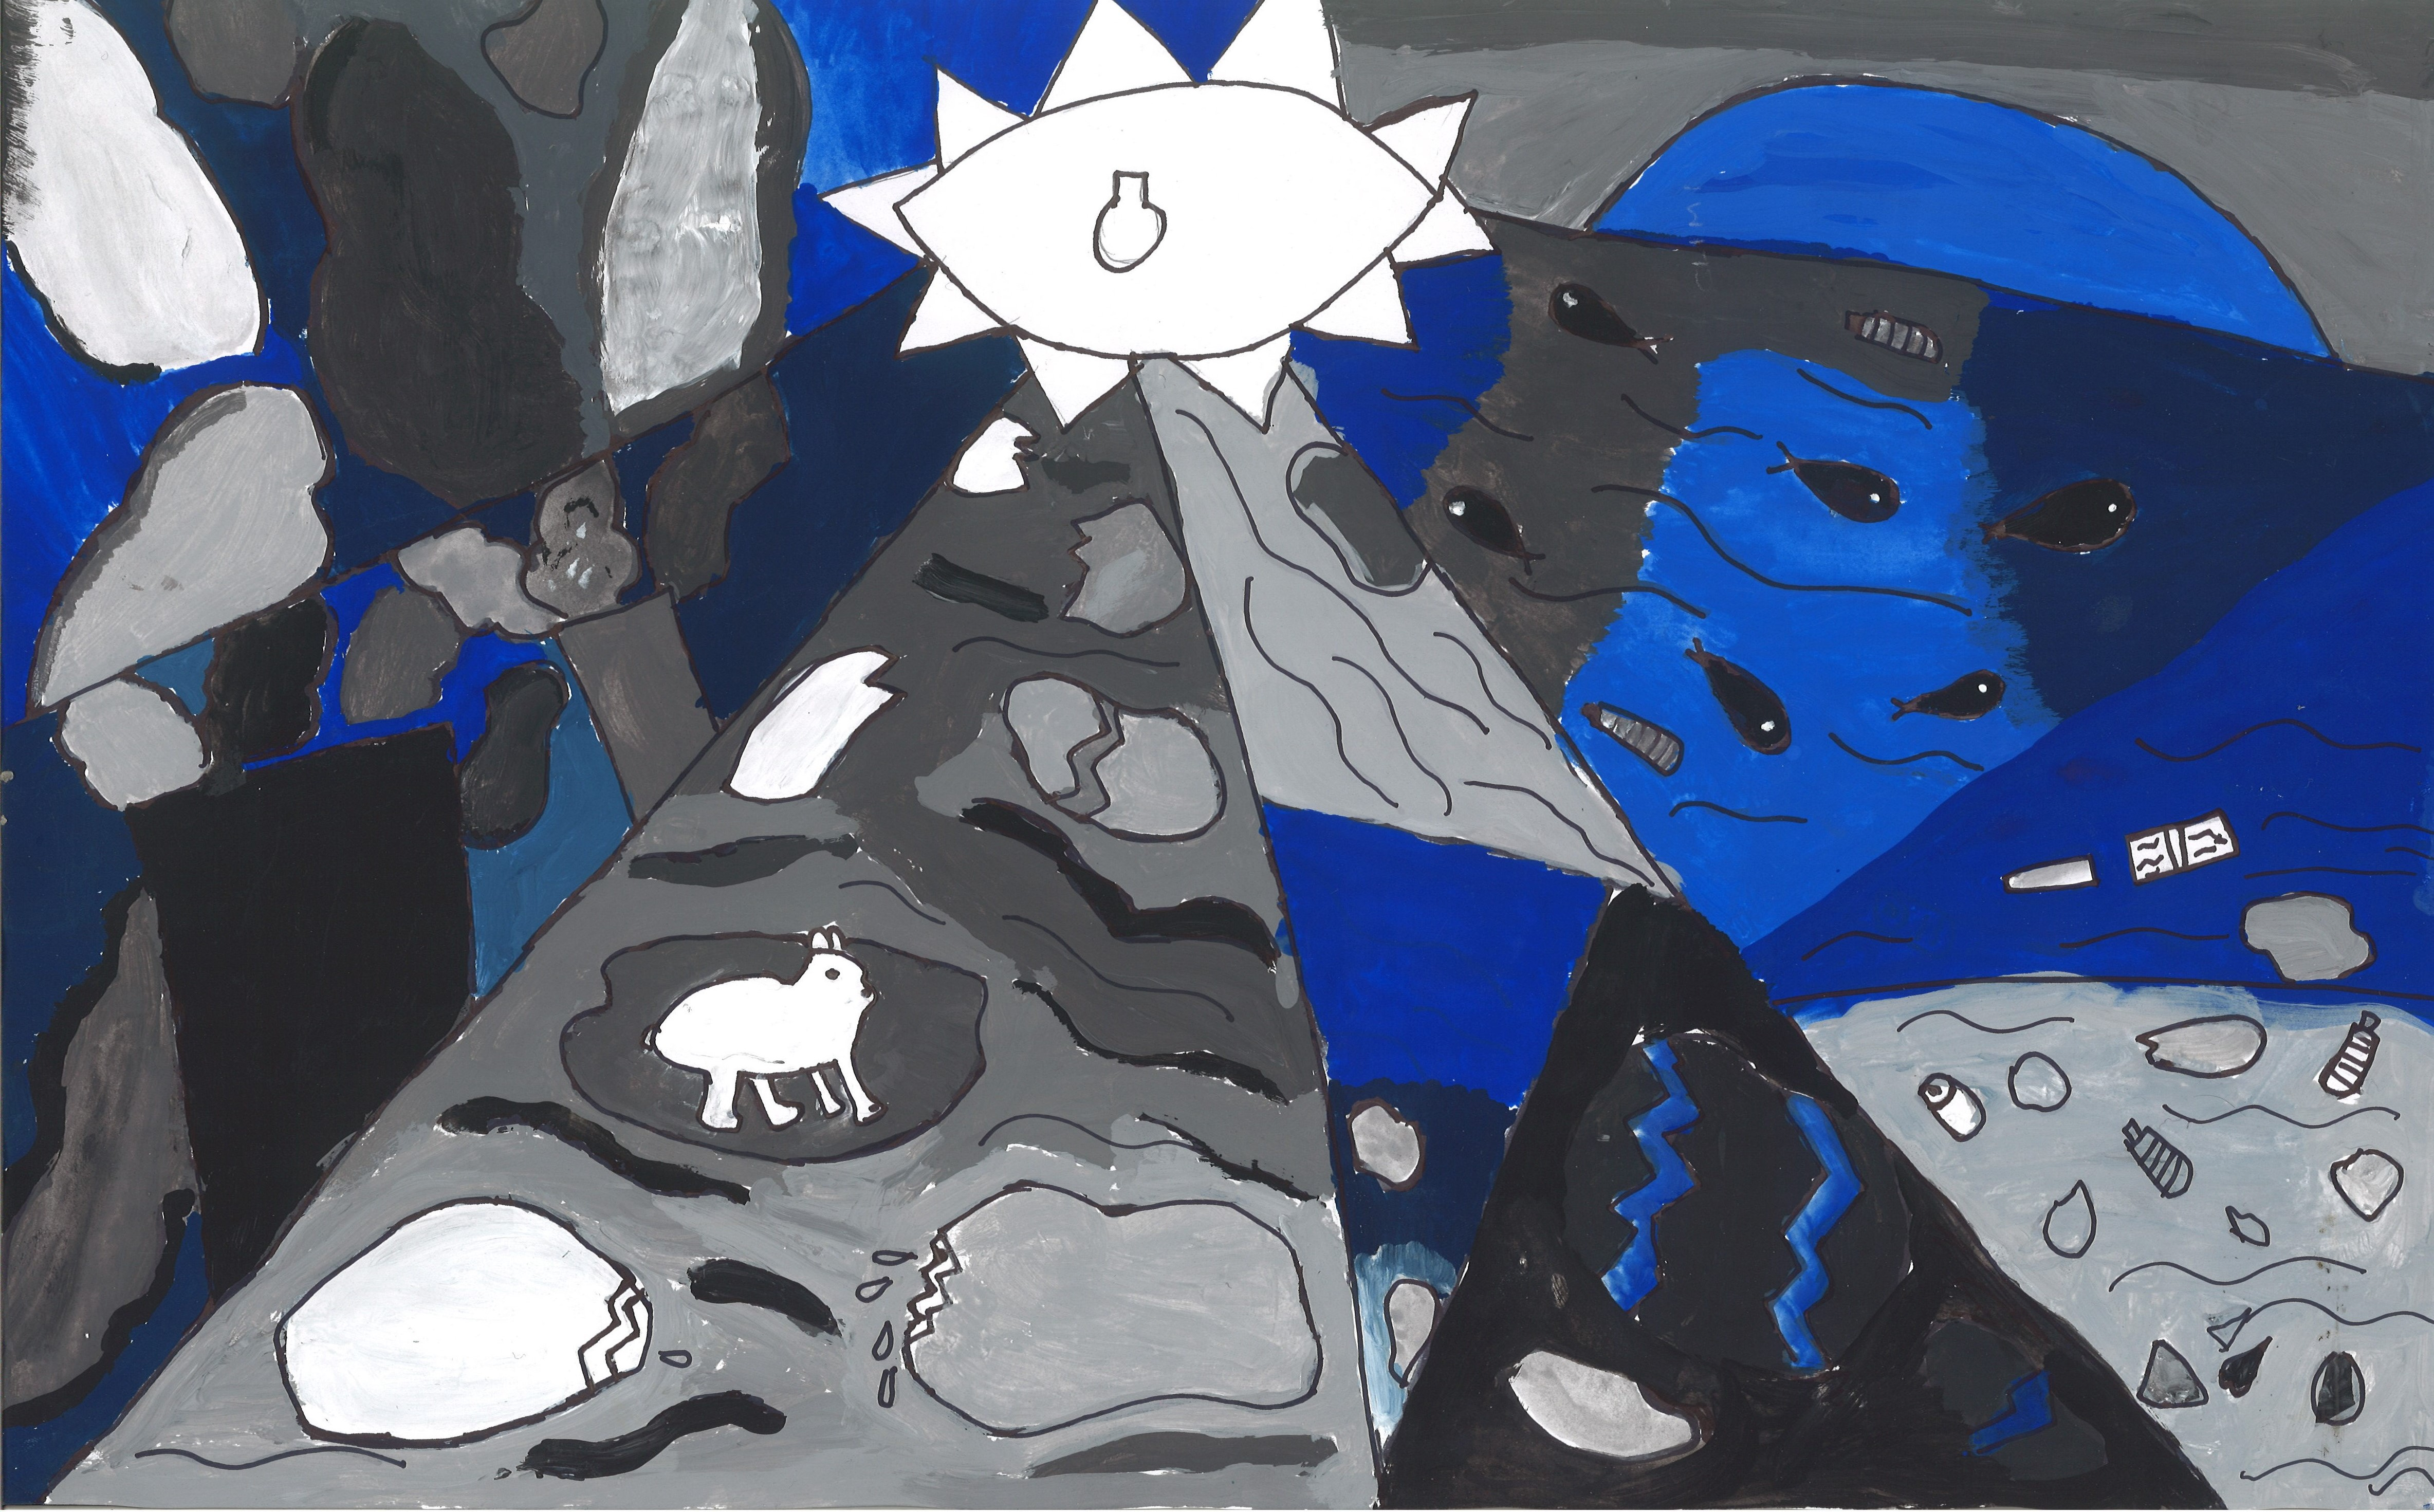 Interpreting Global Issues Through Picasso Guernica